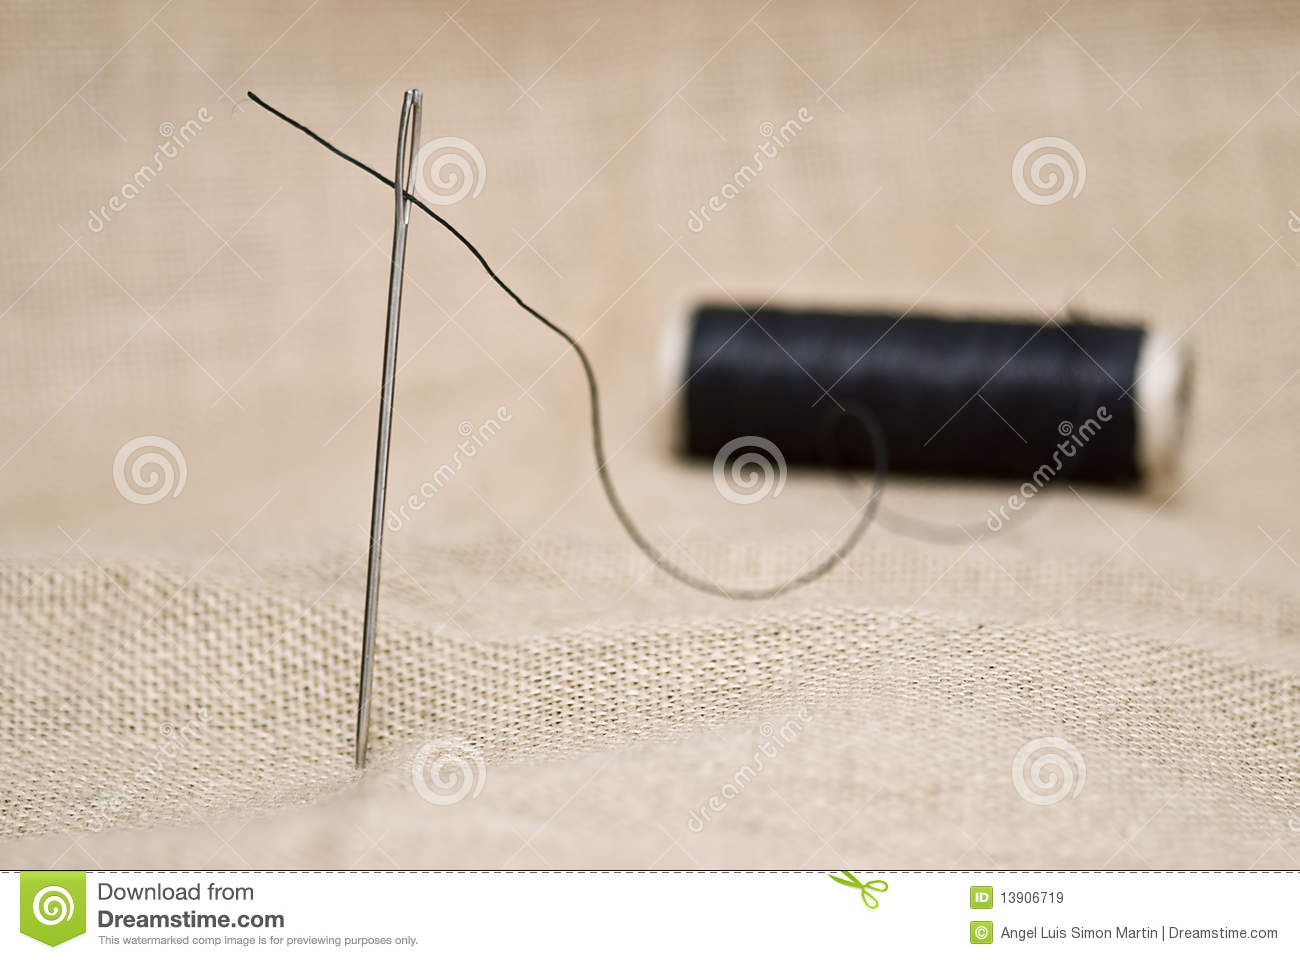 Needle And Thread For Sewing Royalty Free Stock Images